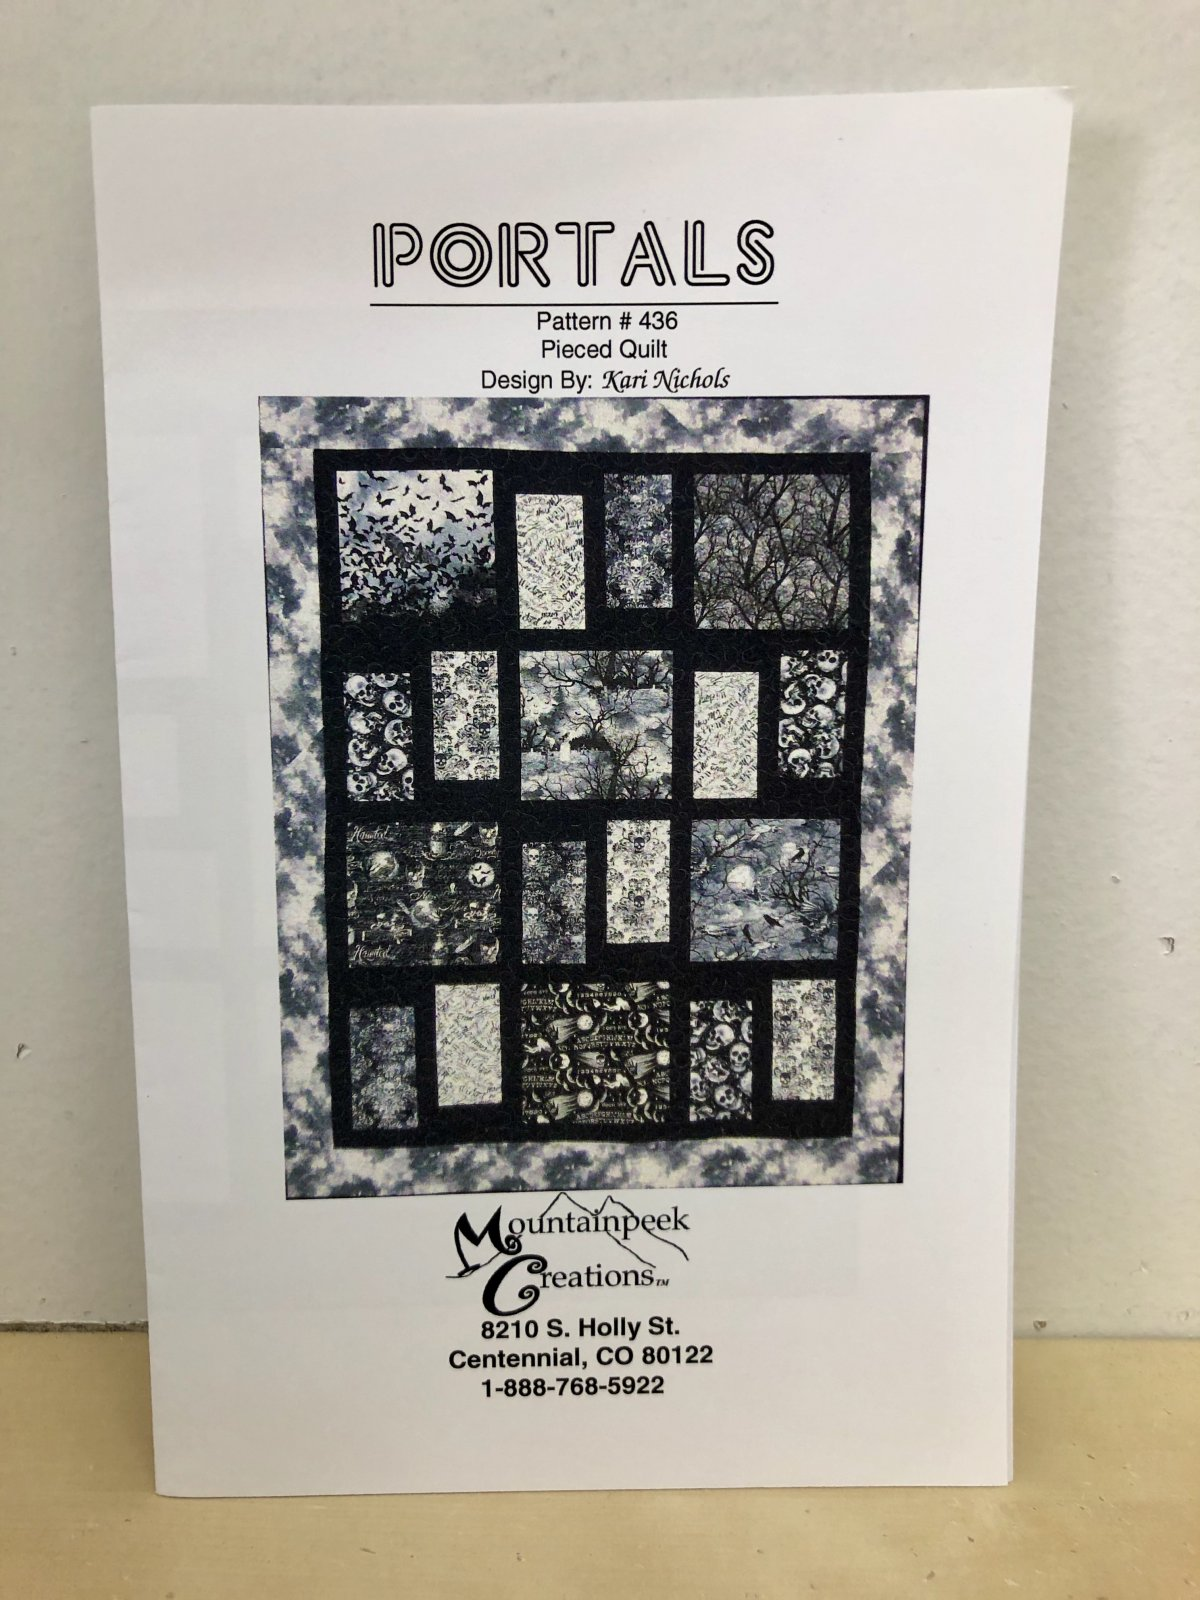 Portals Quilt Pattern #436 by Mountainpeek Creations